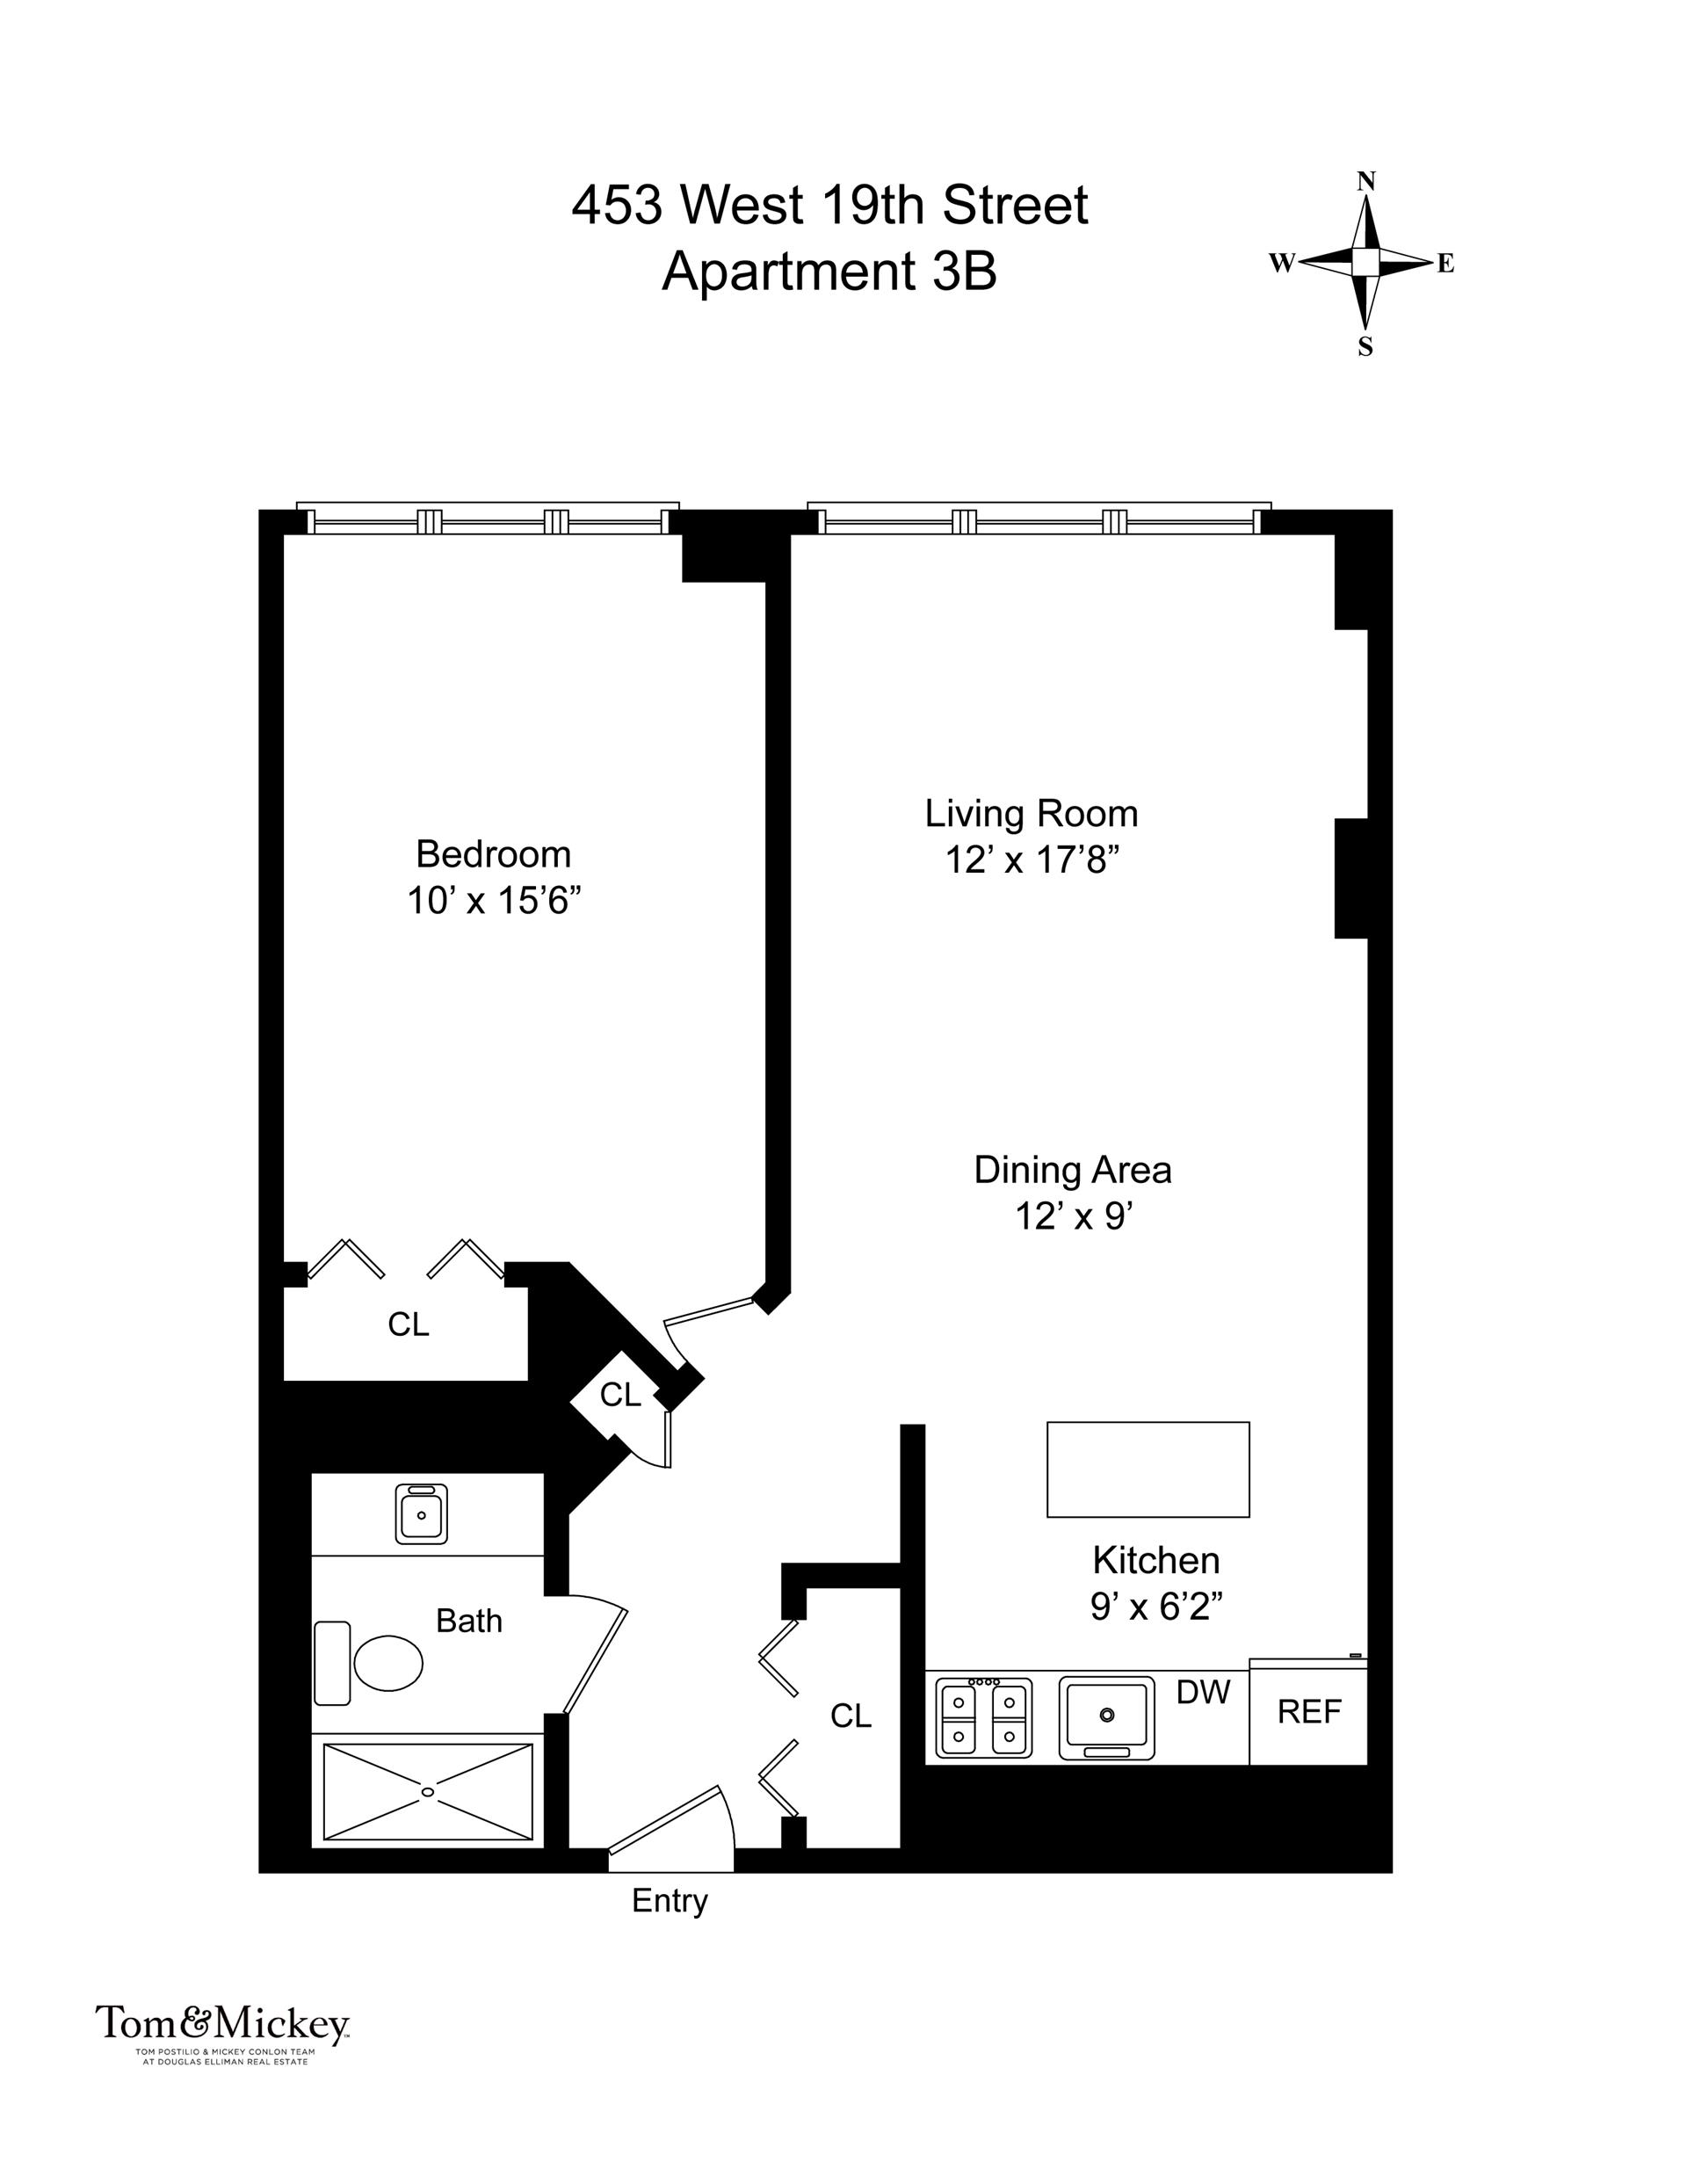 Floor plan of Lloyd 19, 453 West 19th St, 3B - Chelsea, New York